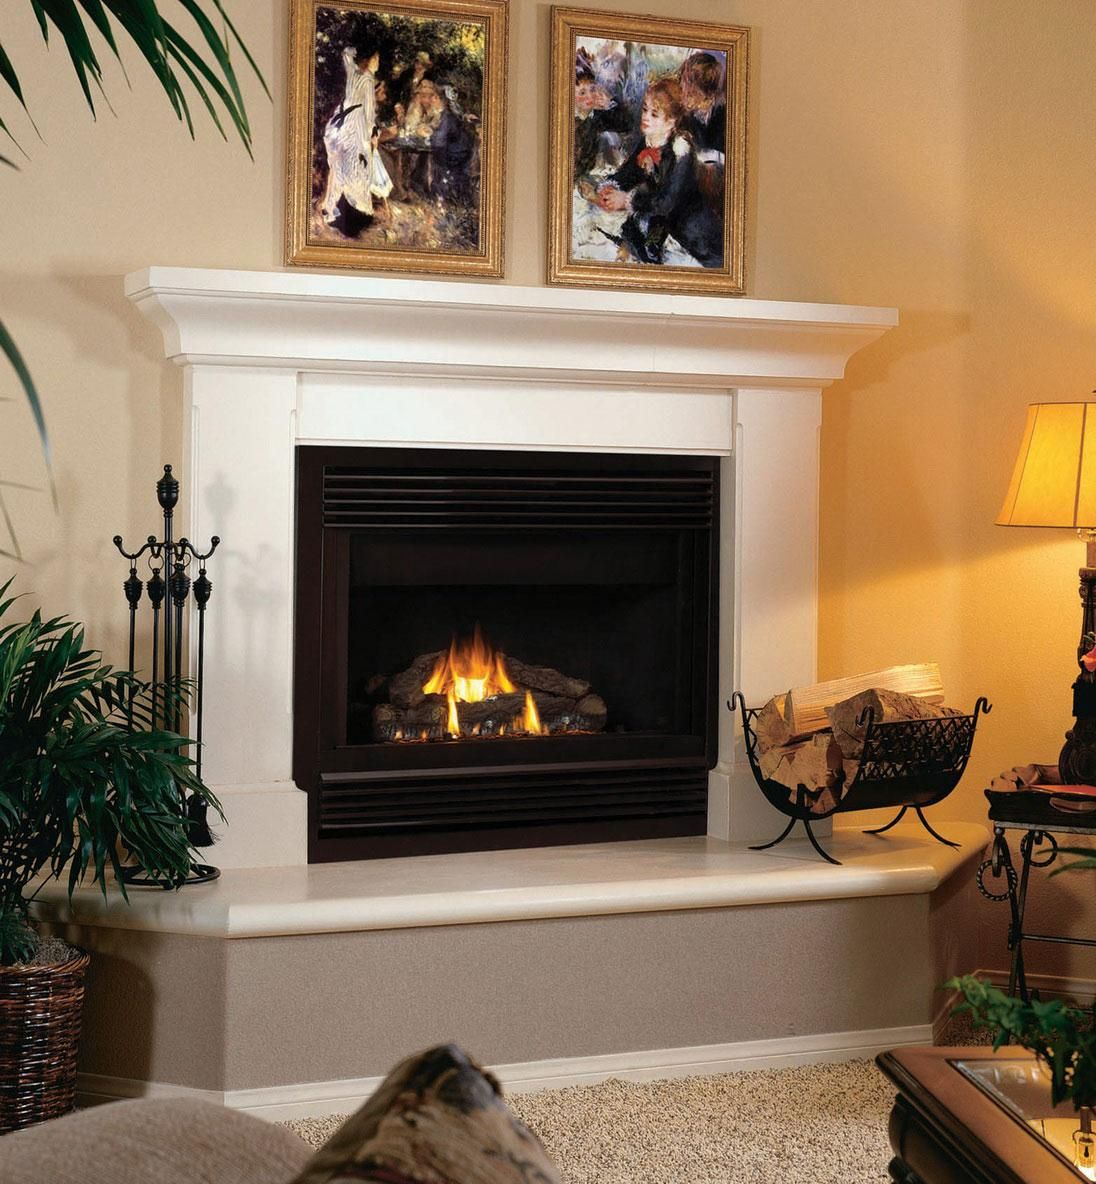 Tile Fireplaces Design Ideas unique fireplace tile ideas 4 tile fireplace design ideas Mantel Decorations Ideas Inspirations Amazing Elegant White Fireplace Mantel Design Ideas Painted Fireplace